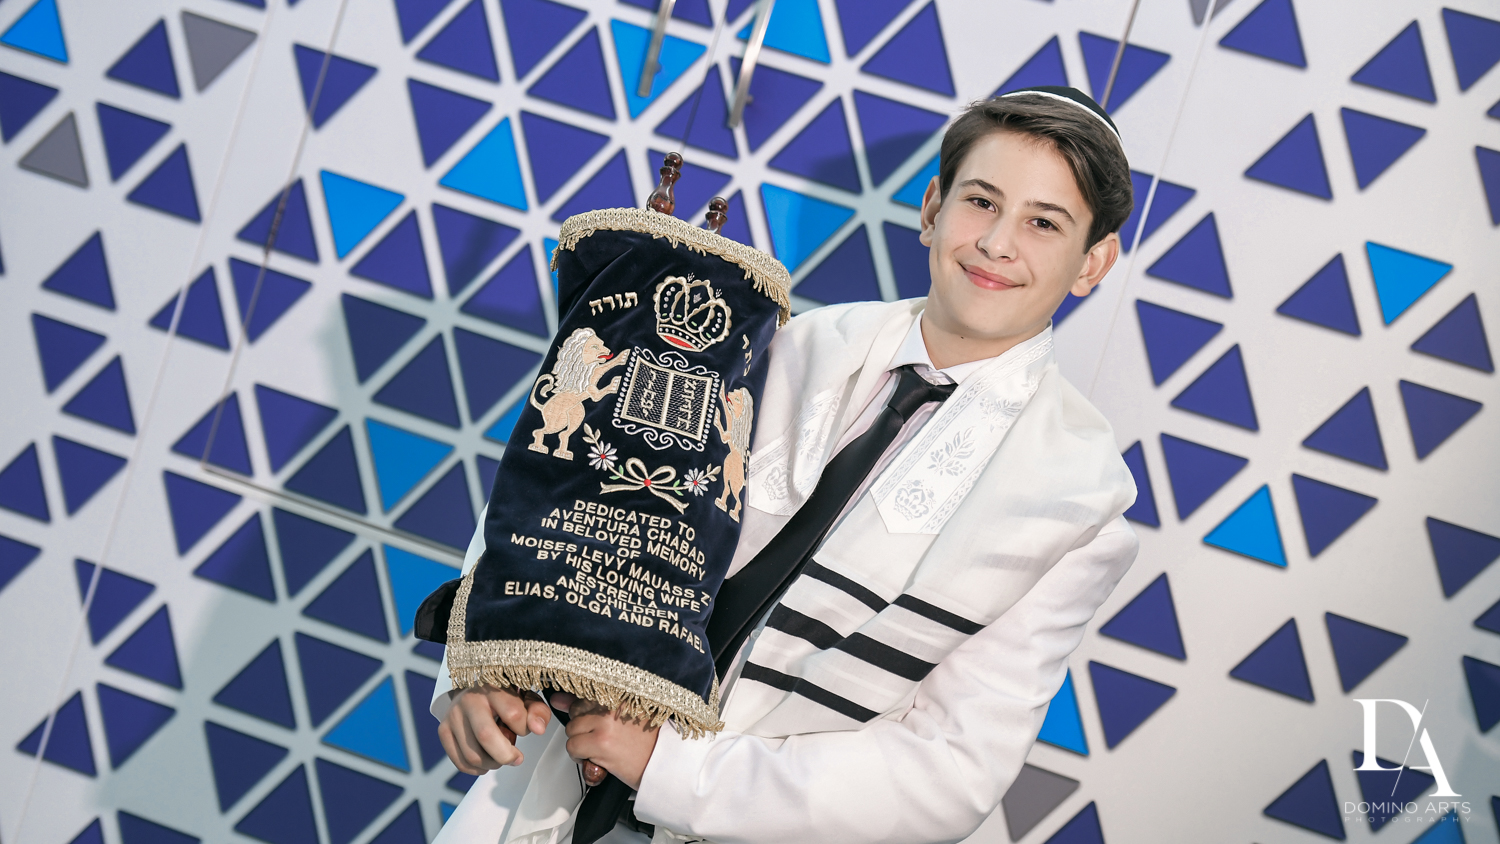 Boy with Torah at Monochrome Bar Mitzvah Ceremony at Aventura Chabad by Domino Arts Photography